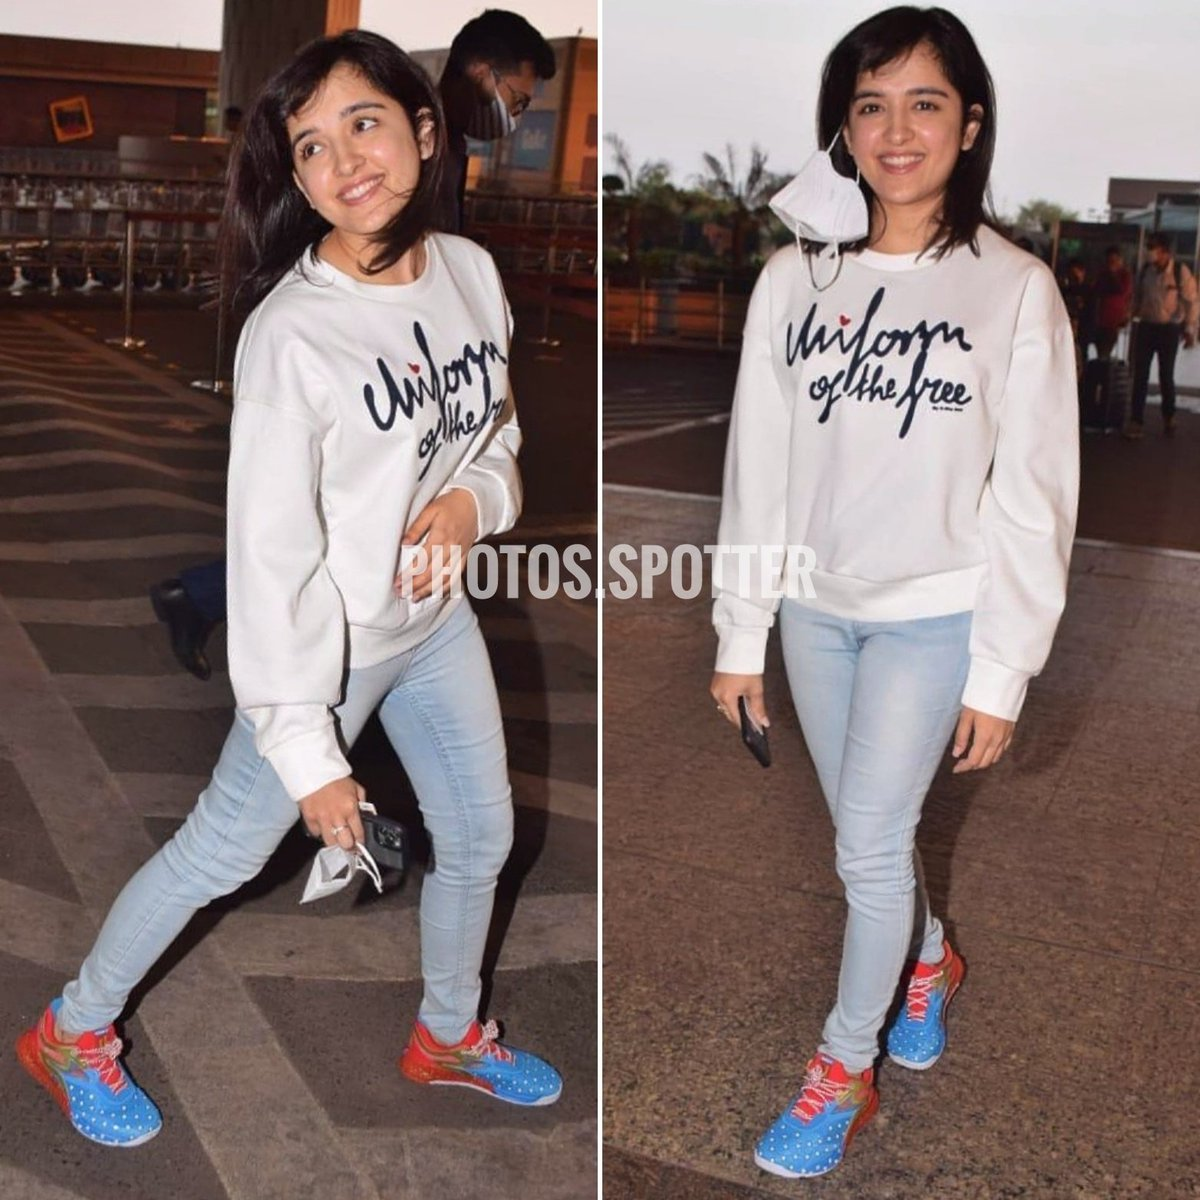 Shirley Setia spotted at the airport as she heads to Hyderabad for the first schedule of her upcoming Telugu film #shirleysetia @ShirleySetia @photosspotter https://t.co/uIWQZhNHNW